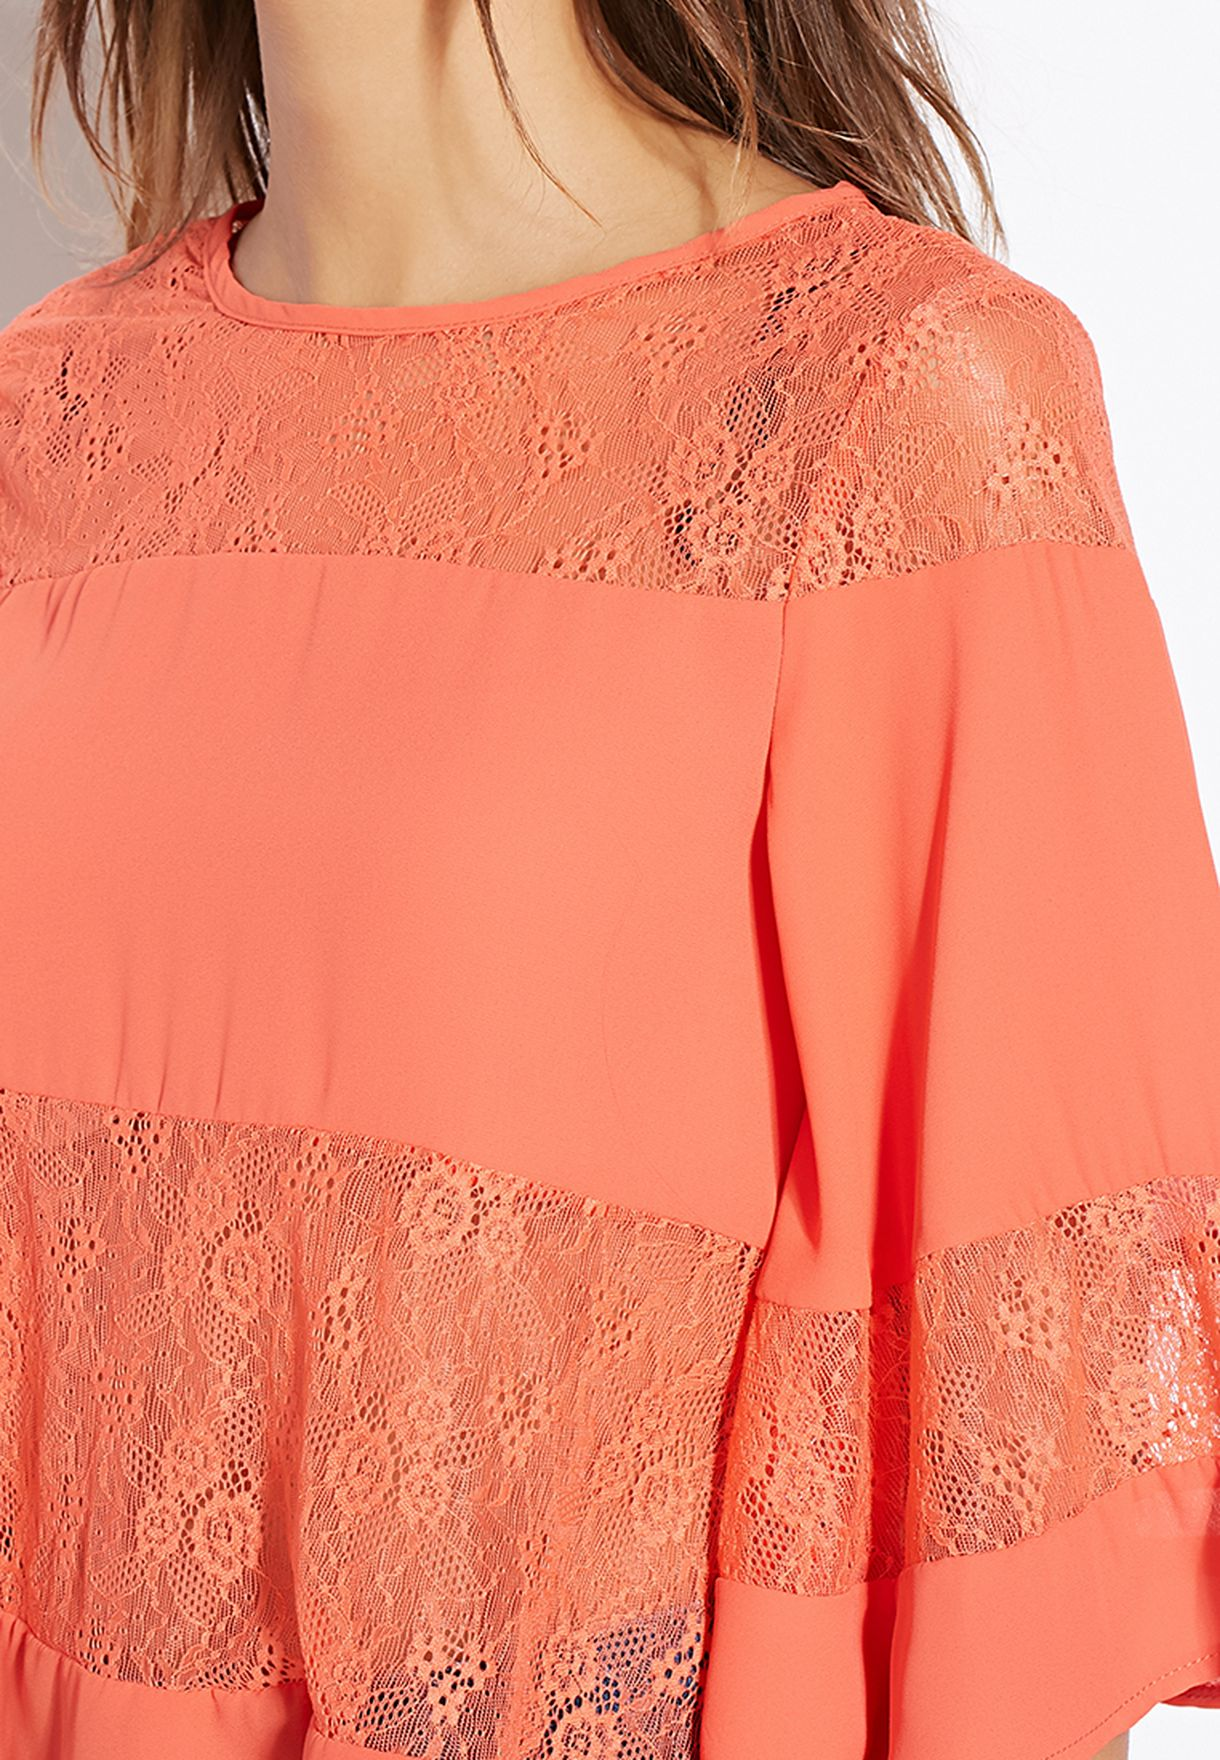 c3f670507a2d Shop Girls On Film orange Tiered Maxi Dress for Women in Bahrain ...